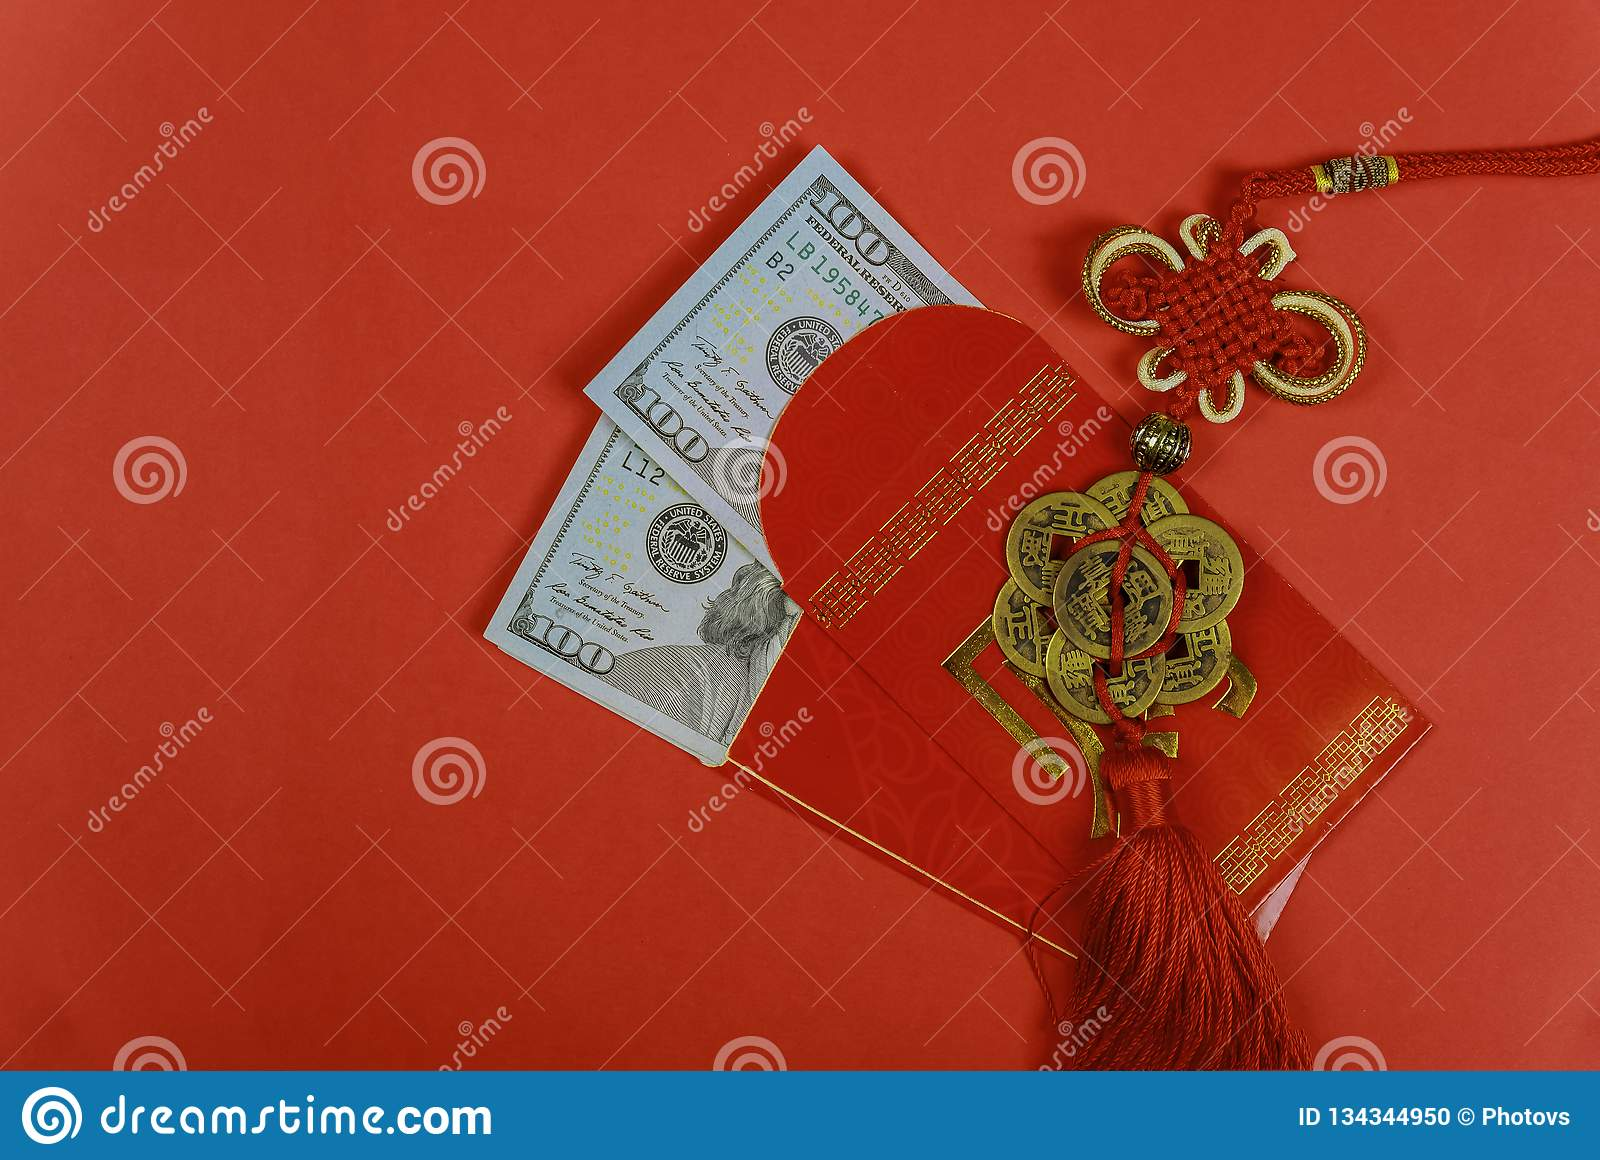 Money in red envelopes Chinese new year greeting gift, closed up of US dollar banknotes in red traditional envelopes